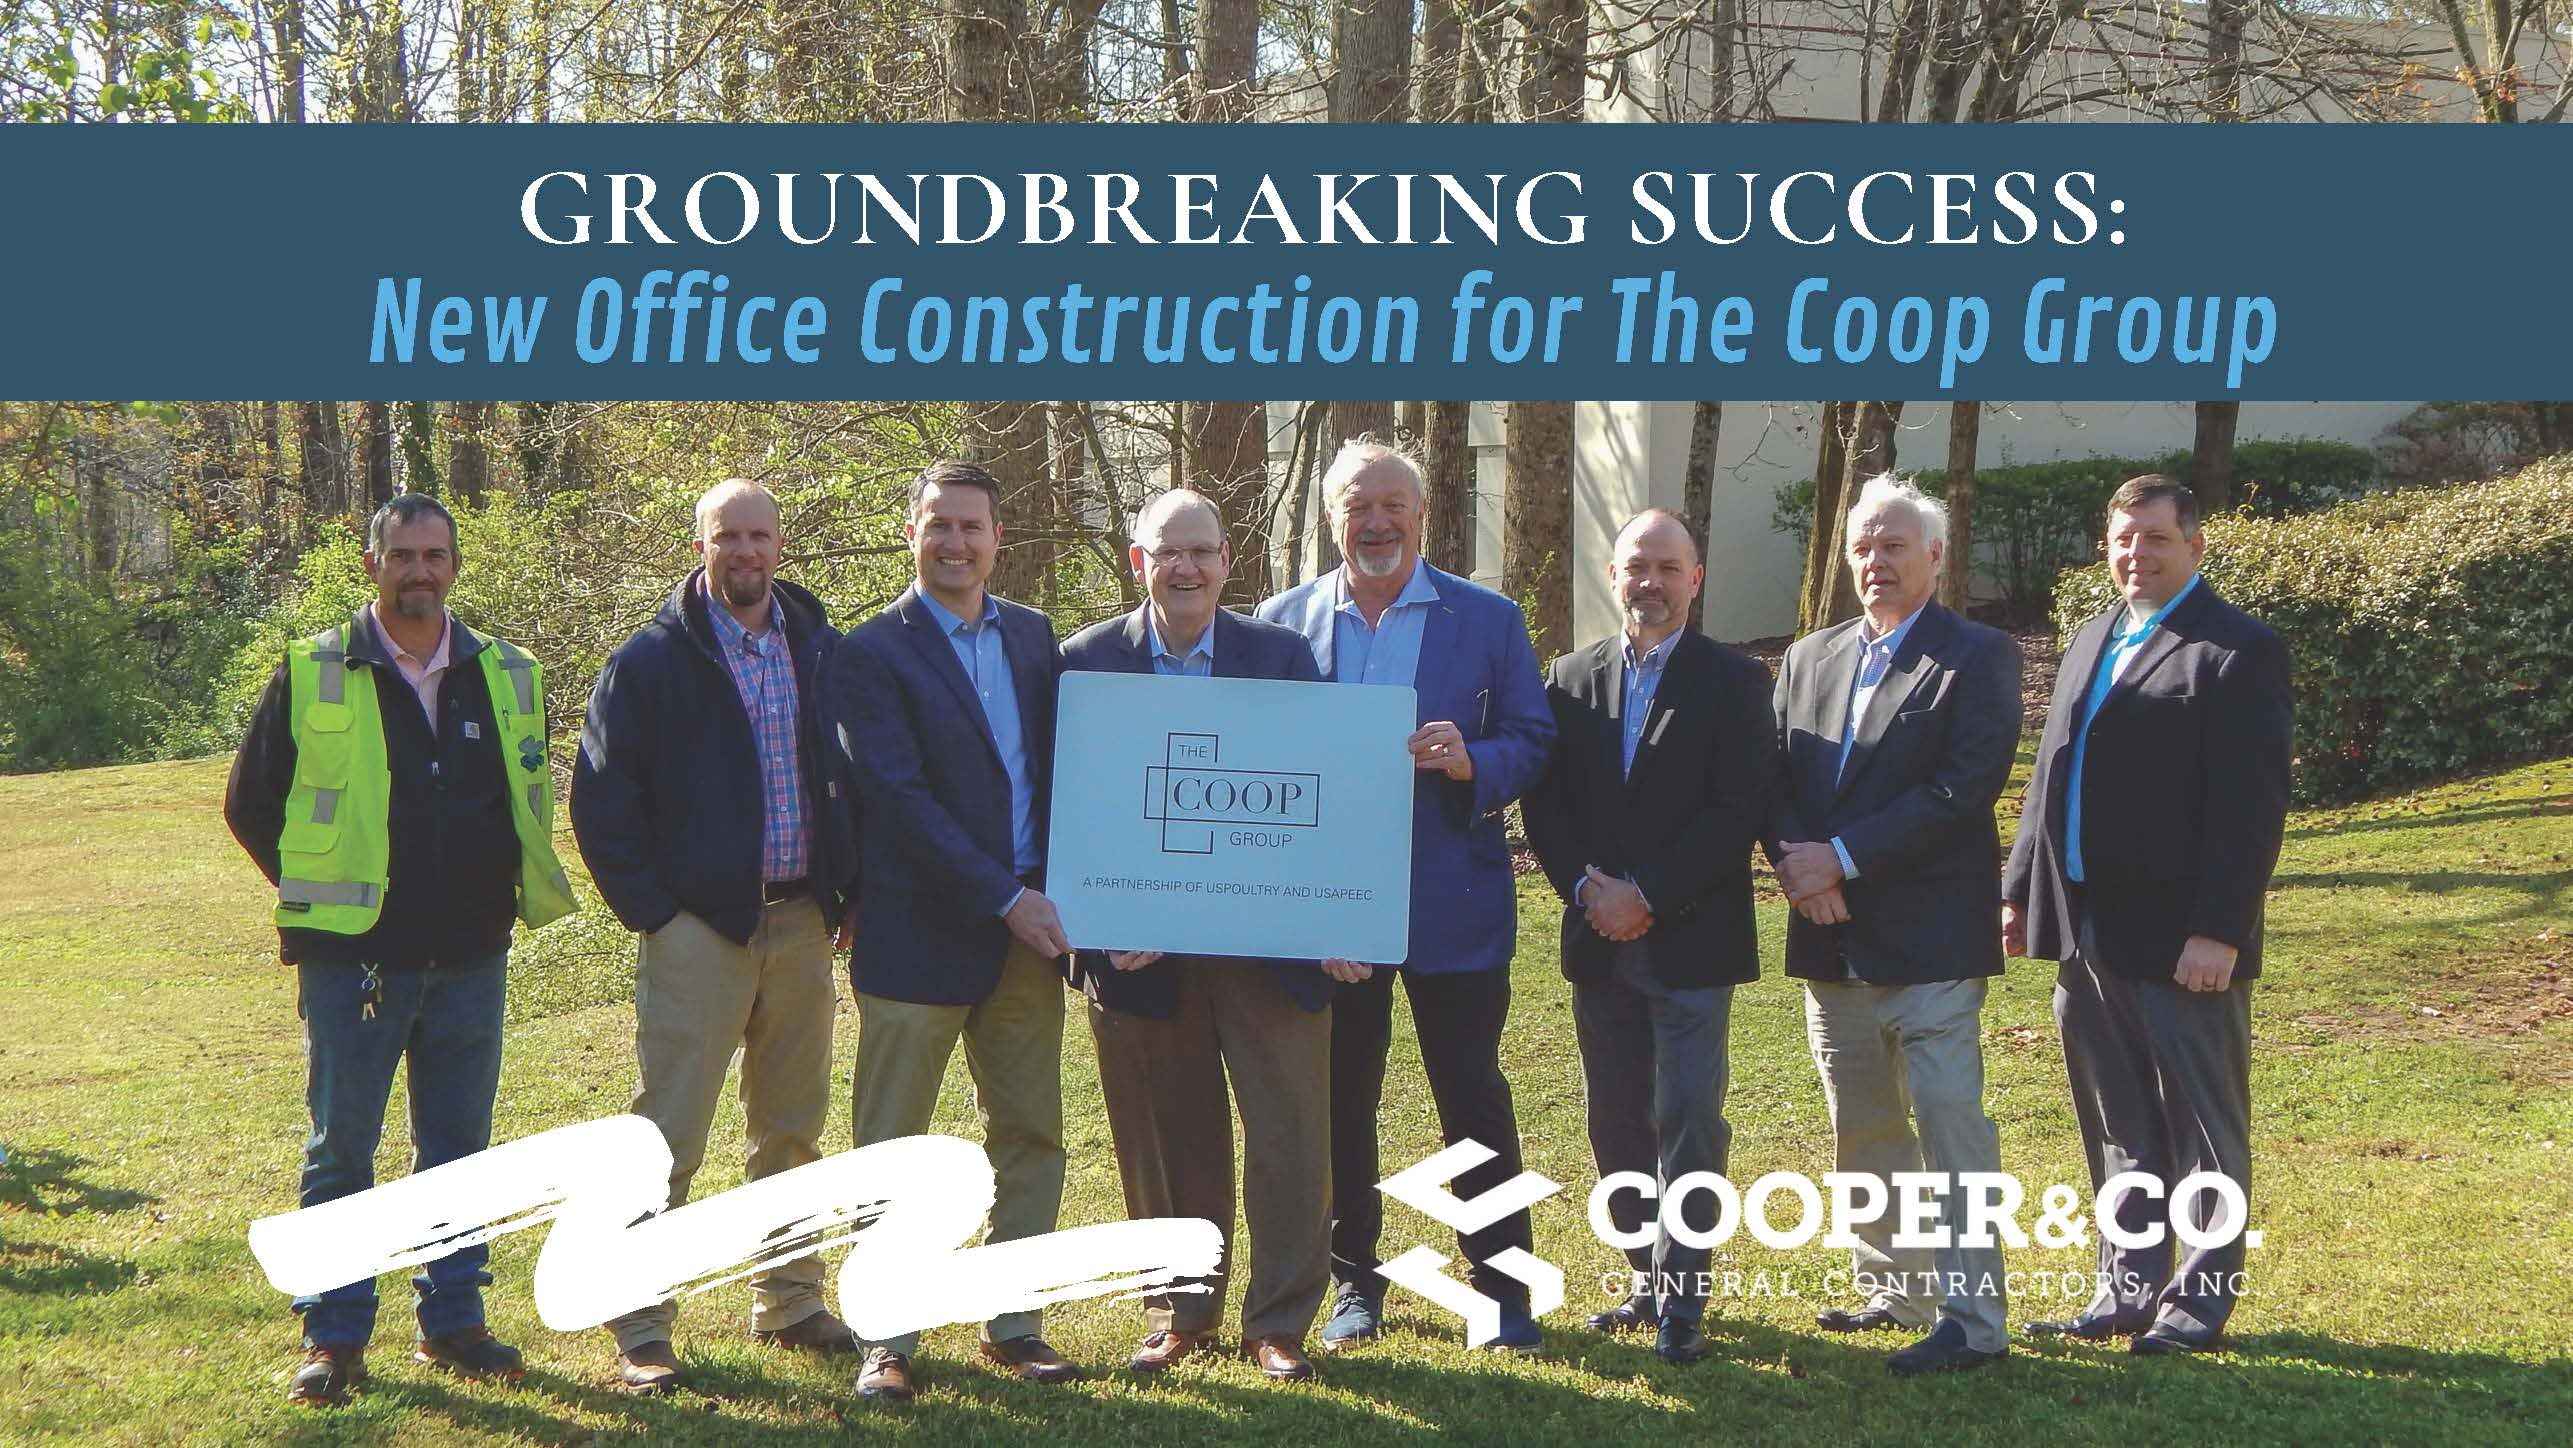 Cooper & Company Breaks Ground on New Project with USPOULTRY and USAPEEC